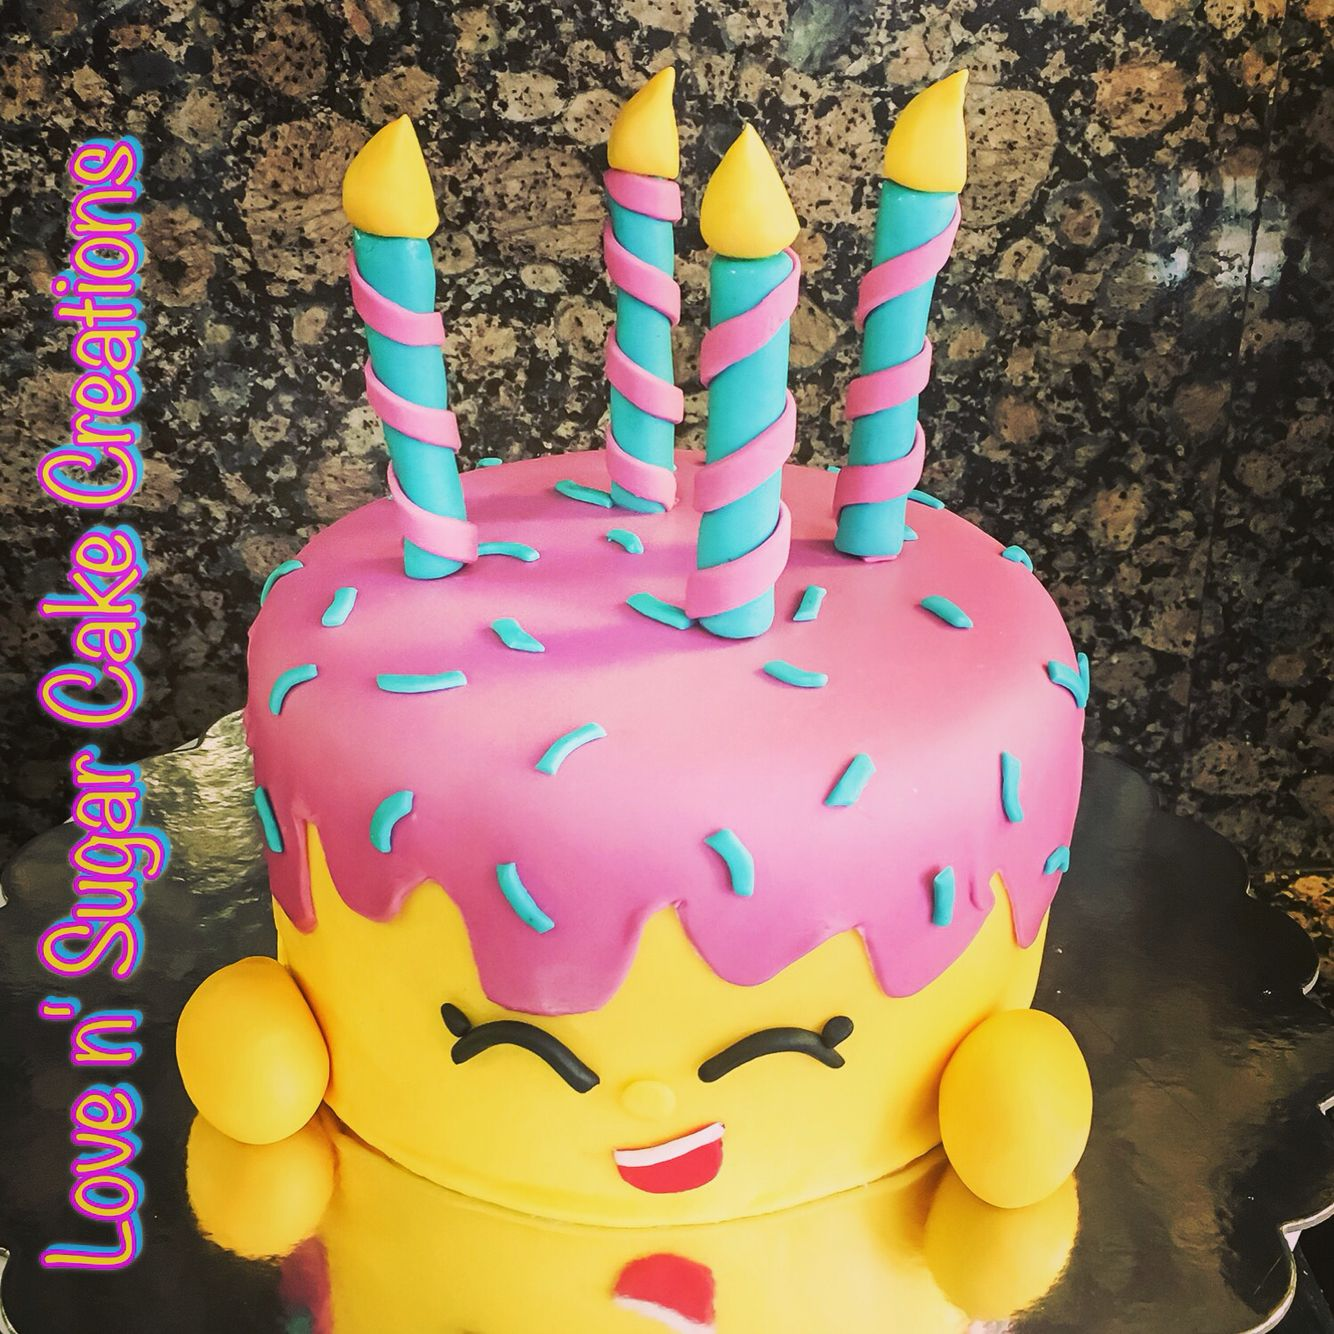 Shopkins birthday cake for my daughter Mary Wishes shopkins